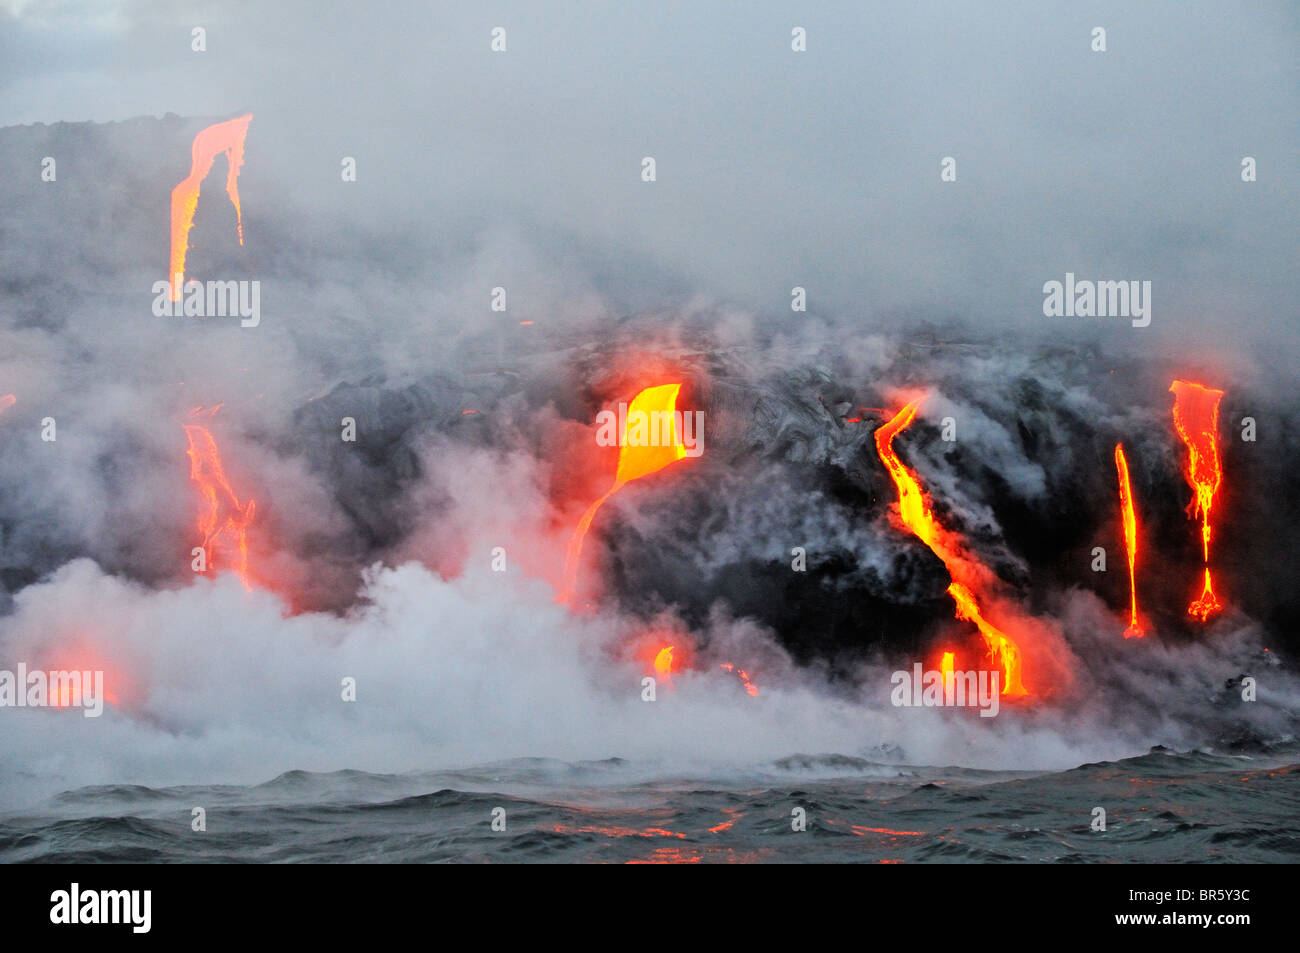 Steam rising off lava flowing into ocean, Kilauea Volcano, Hawaii Islands, United States - Stock Image